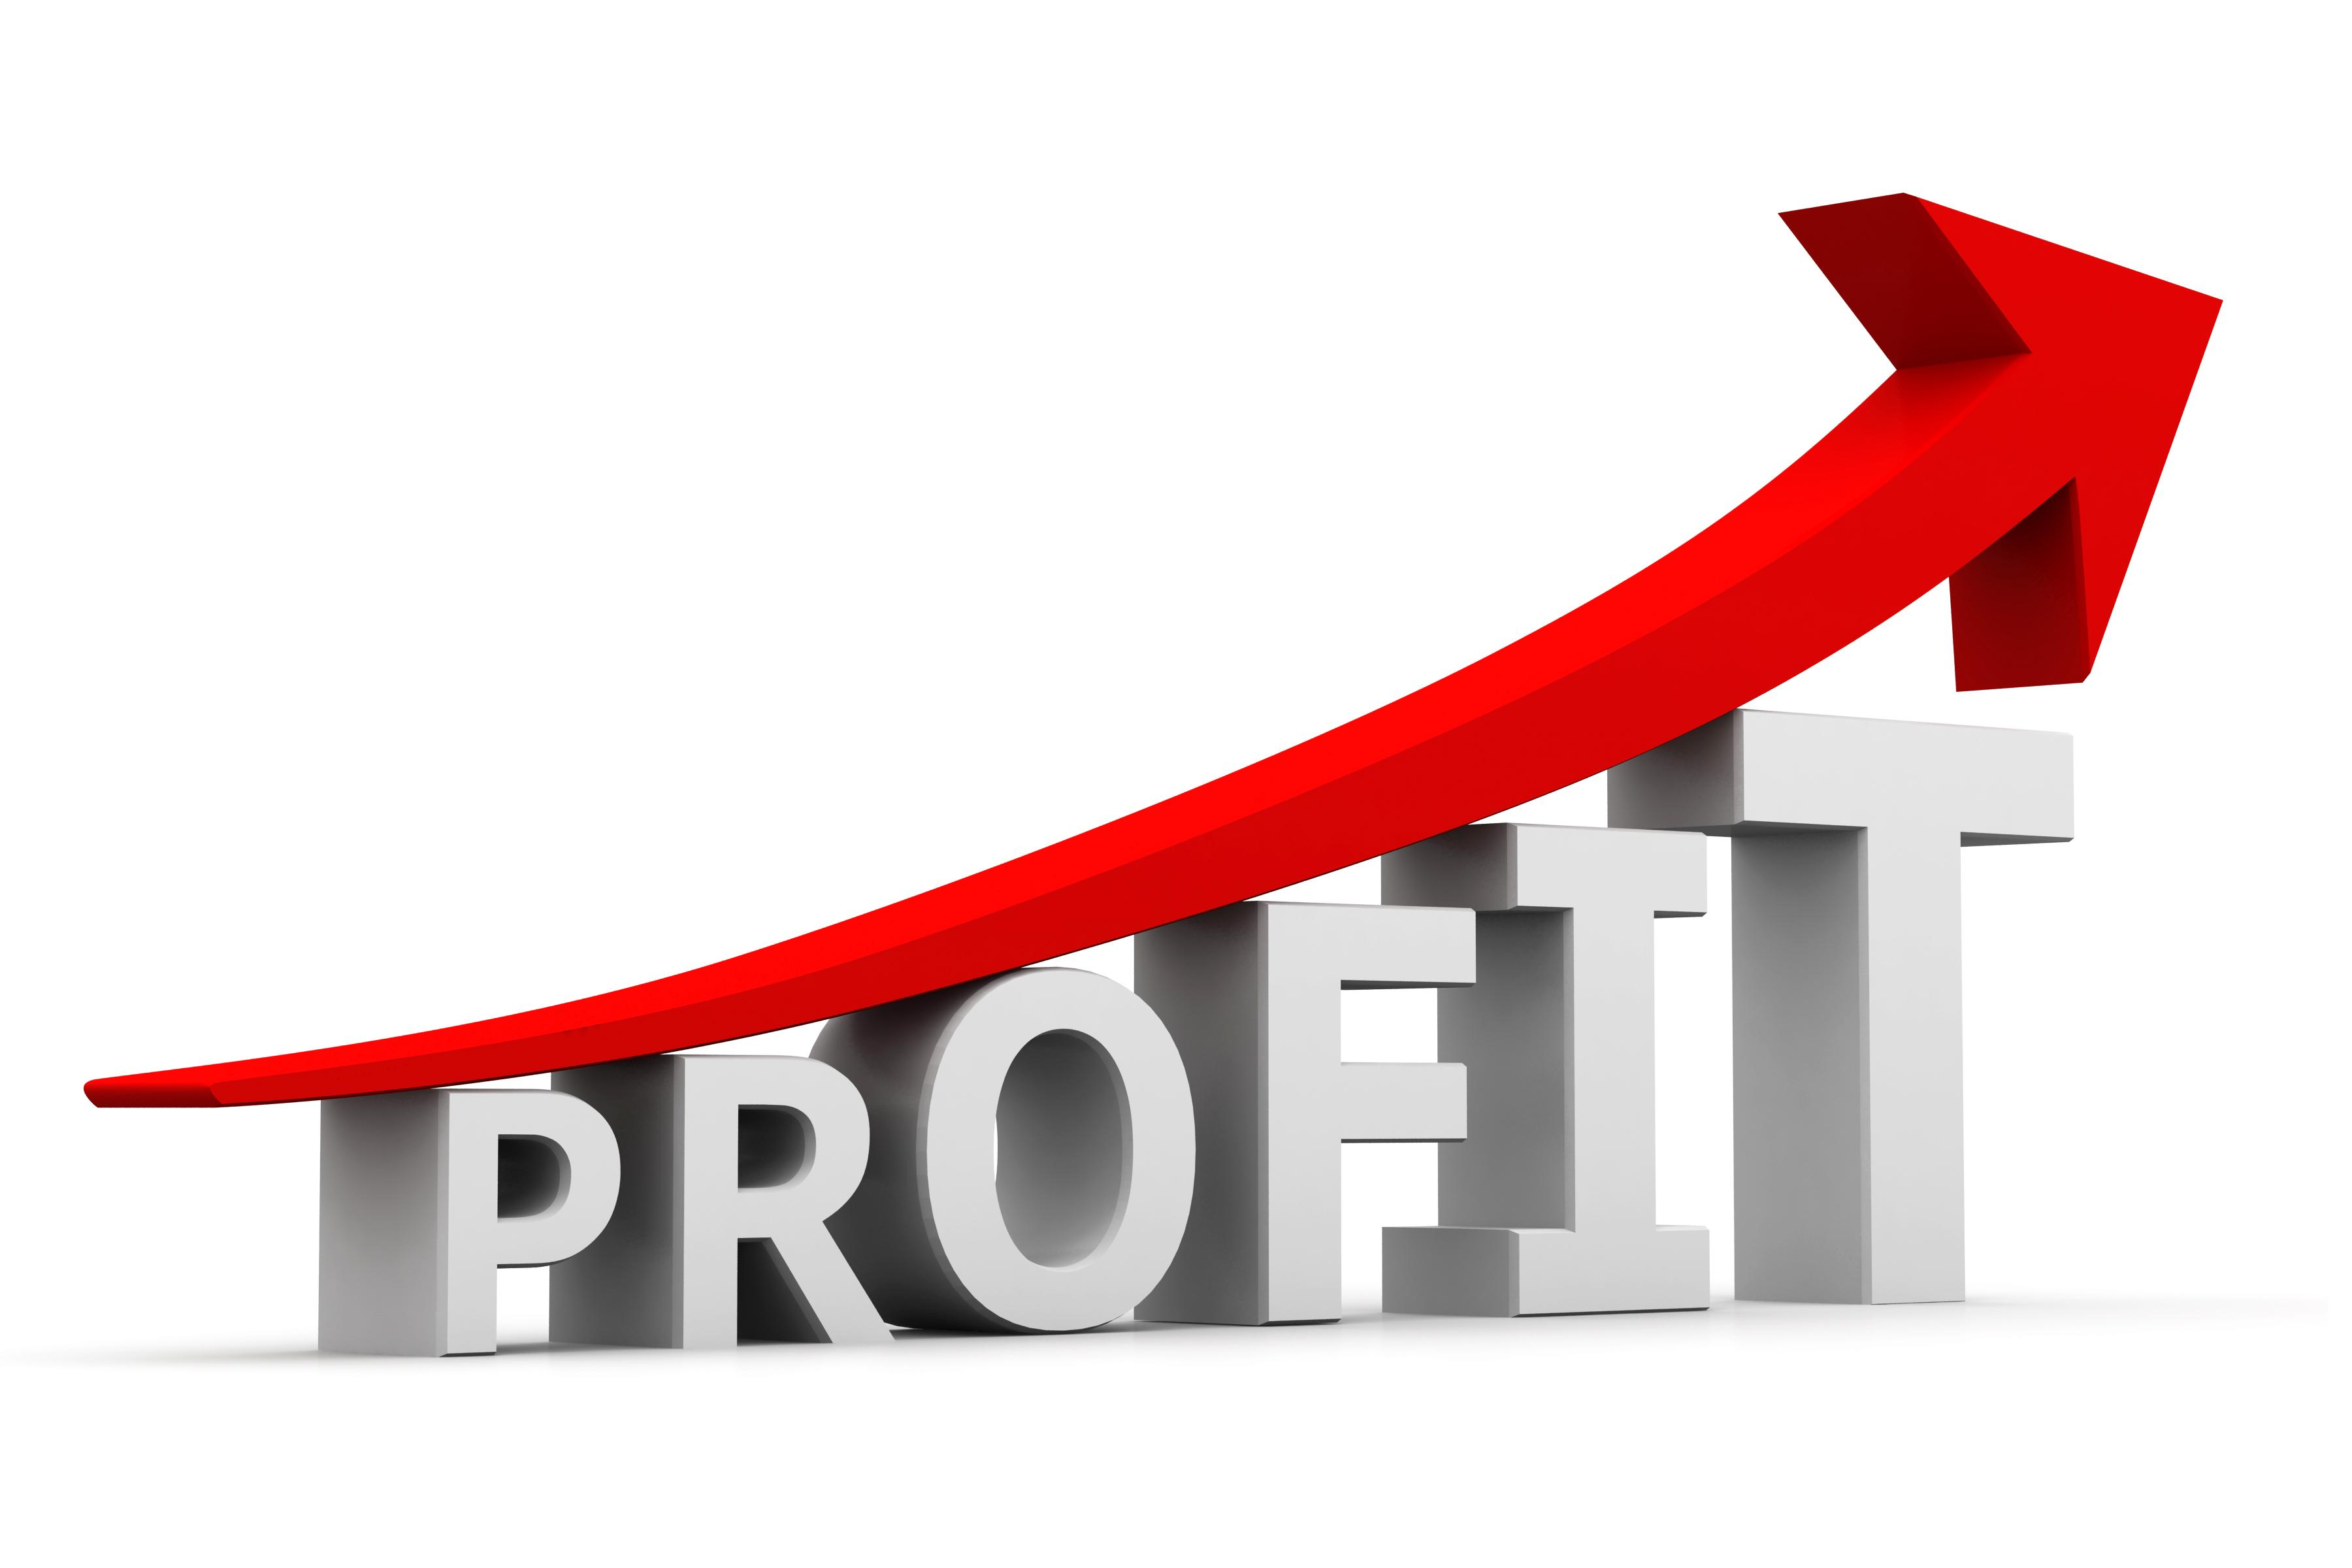 Wealth Building (formally Profit Share)